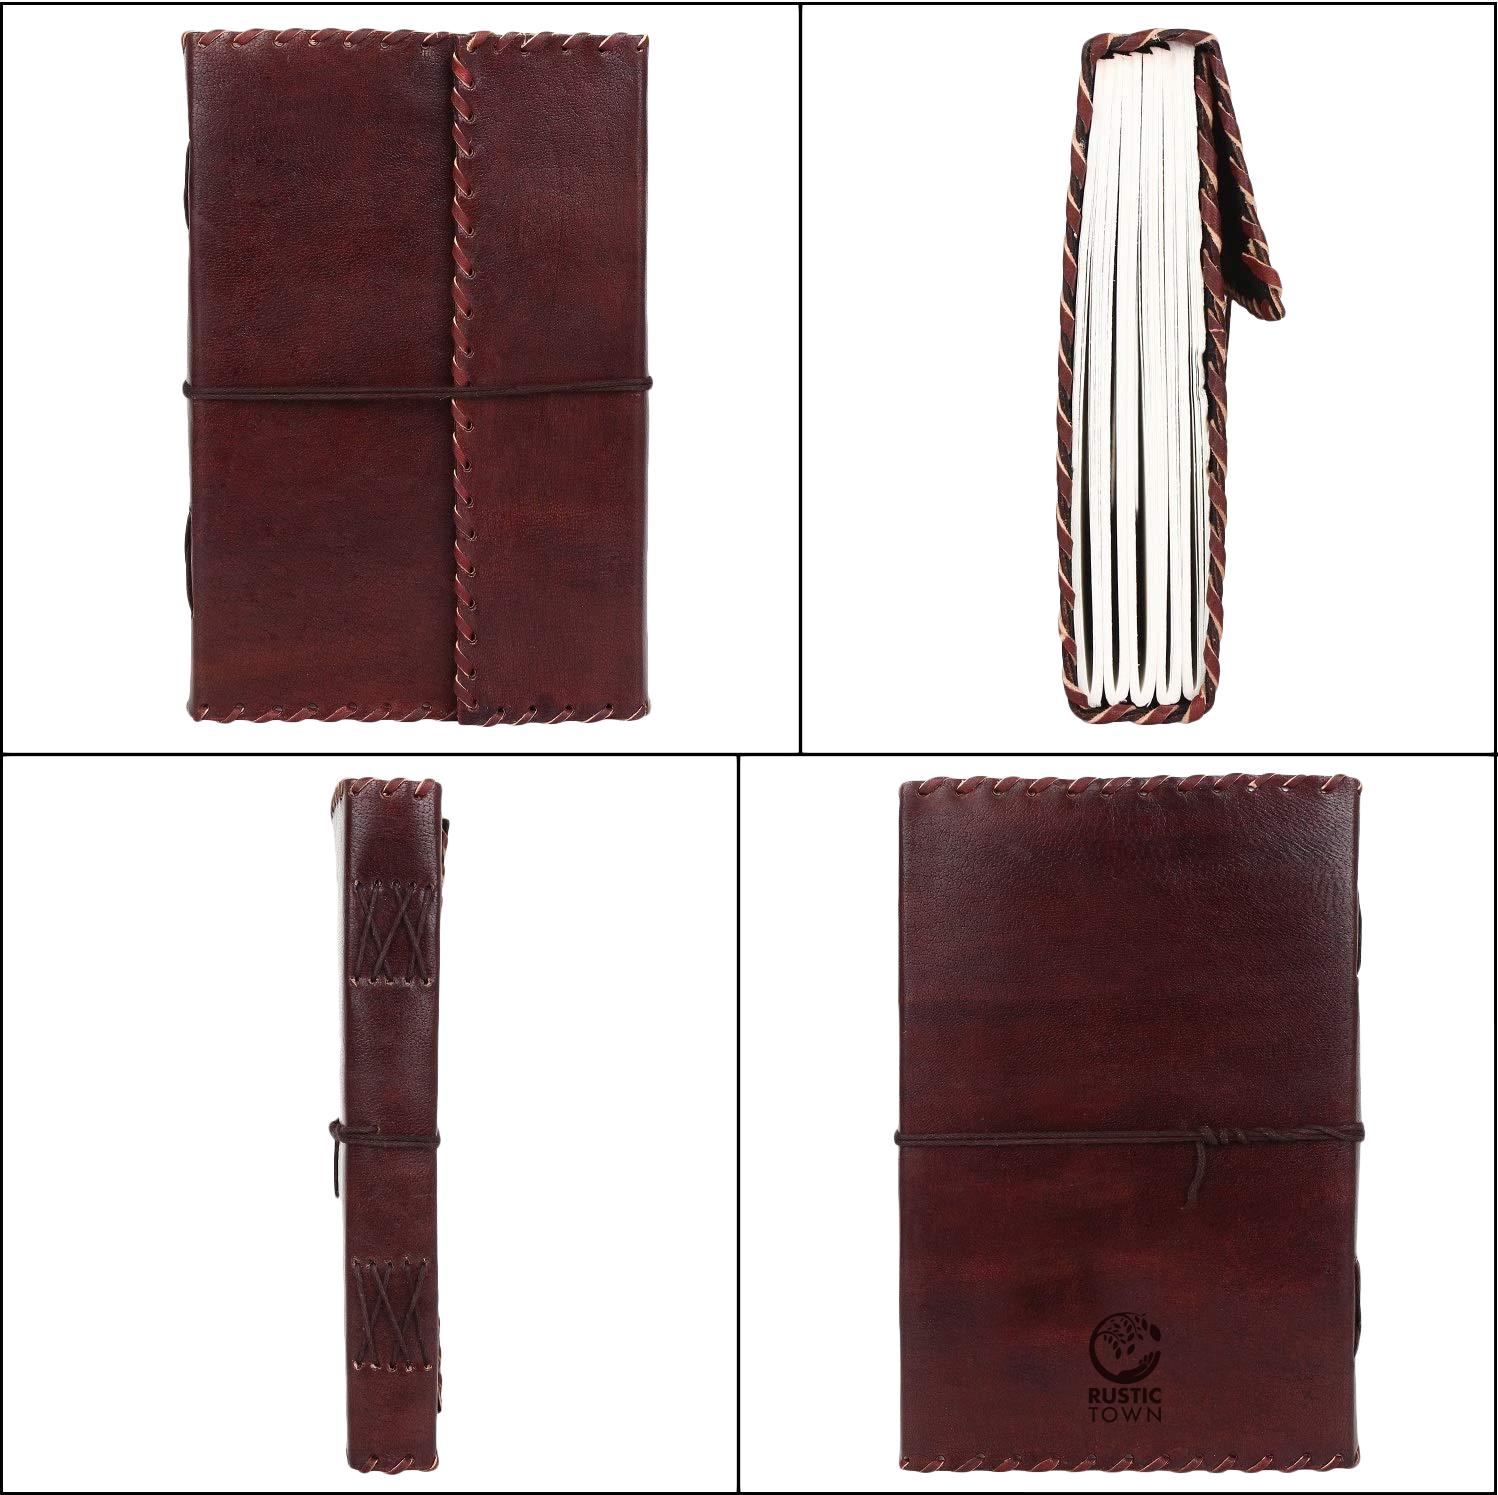 Handmade Gemnuine Leather Journal for Men Women